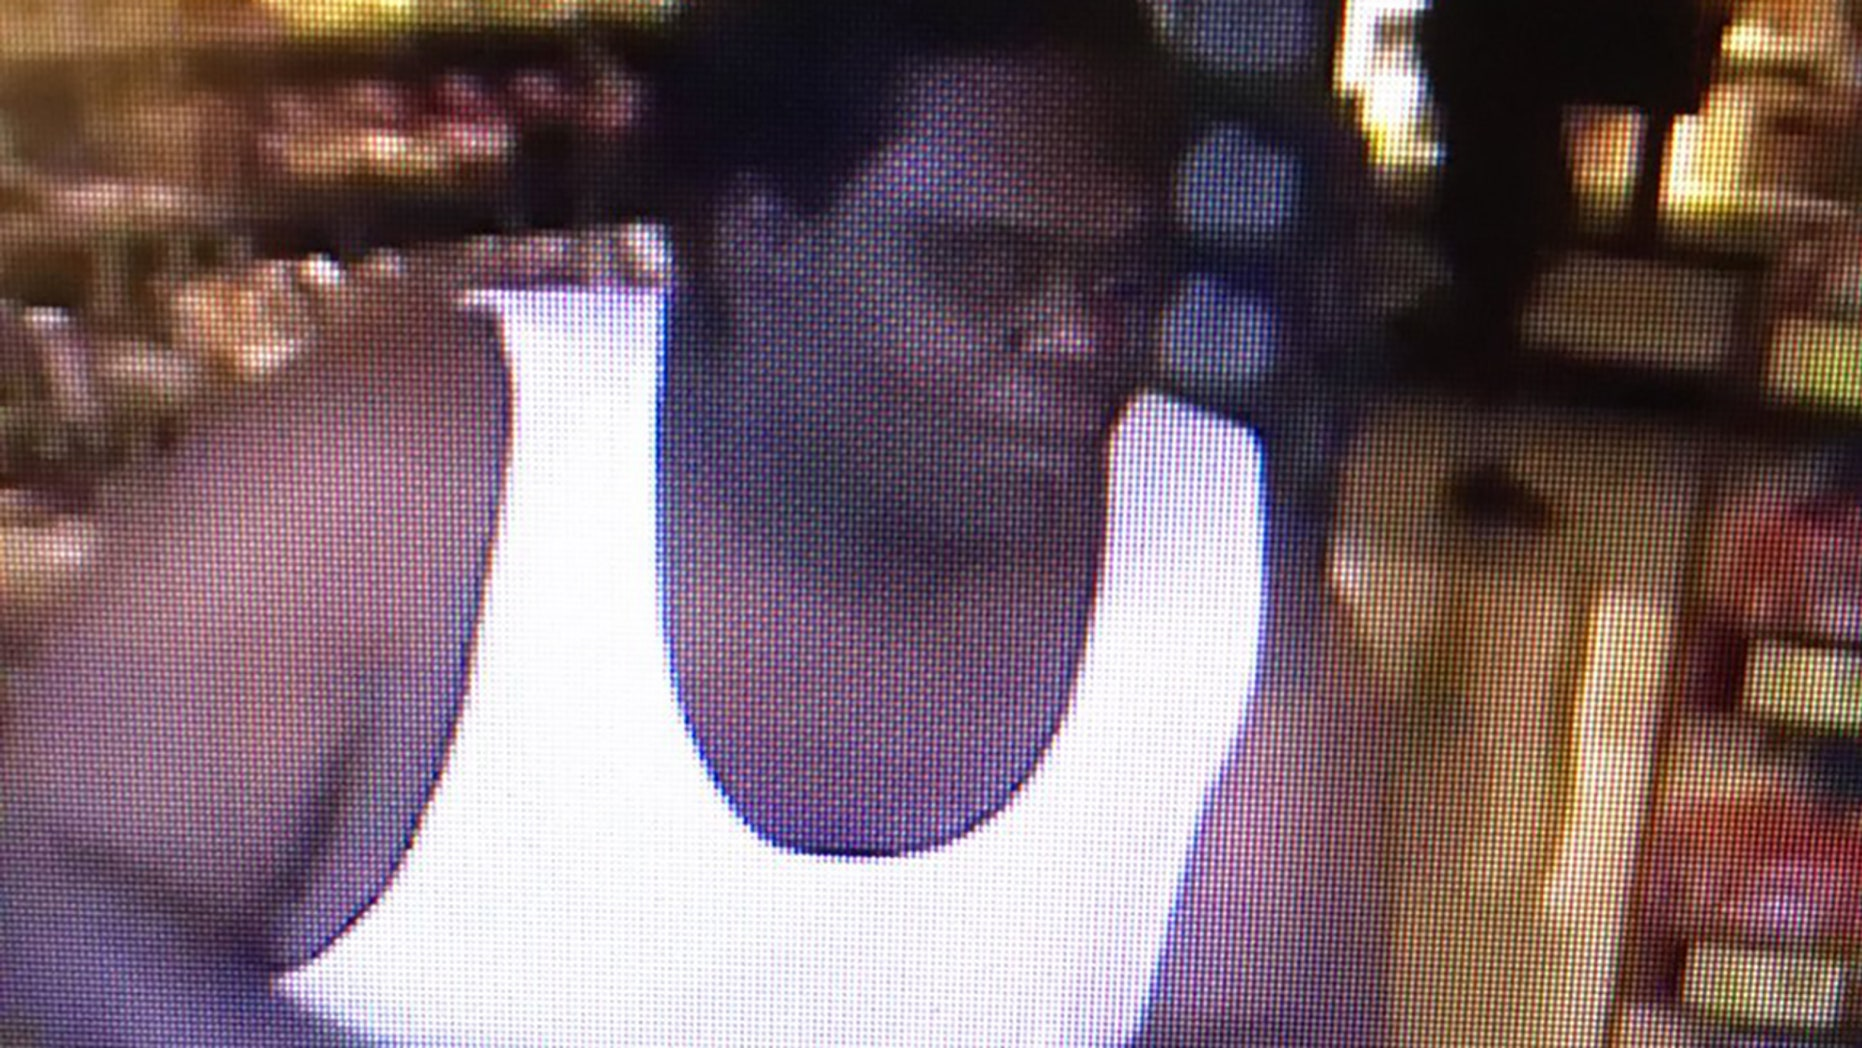 Police in Des Moines, Wash. are searching for this man accused of stealing groceries.